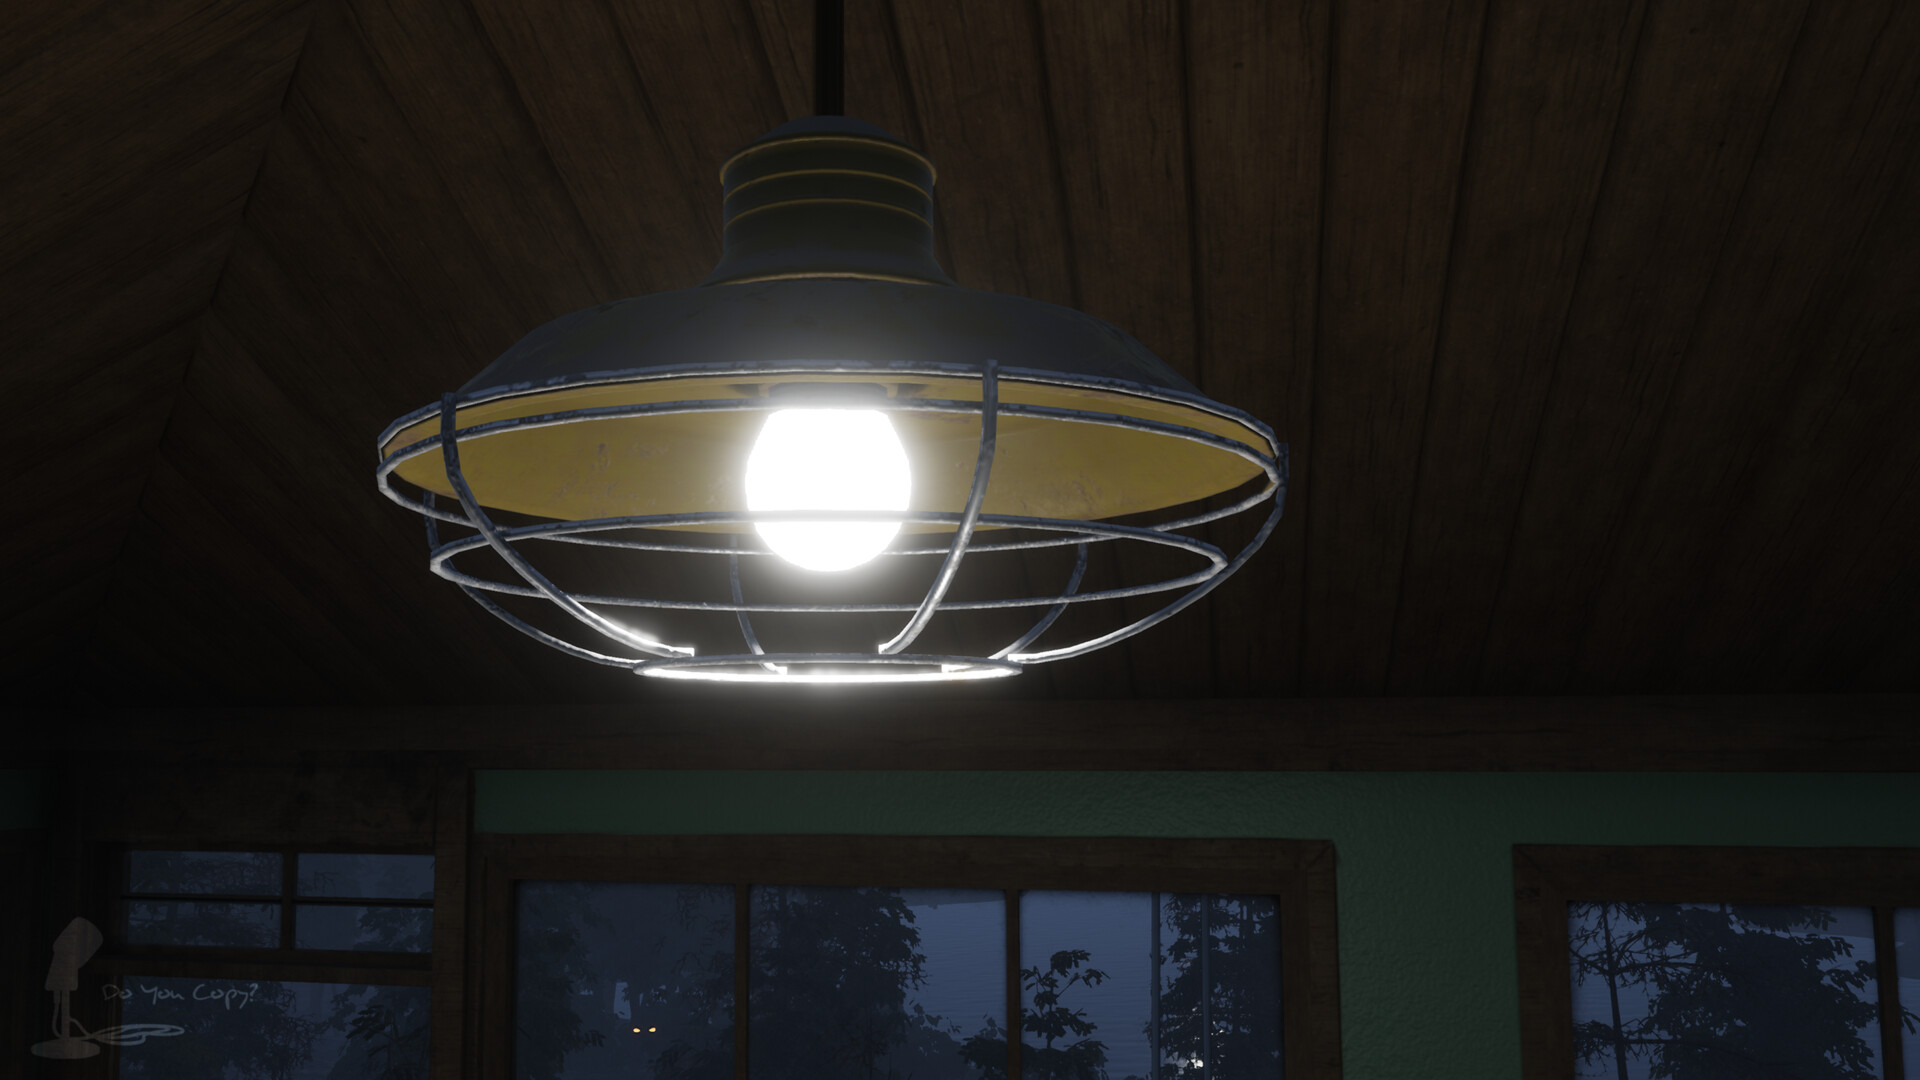 Hanging lamp - Rendered In Engine